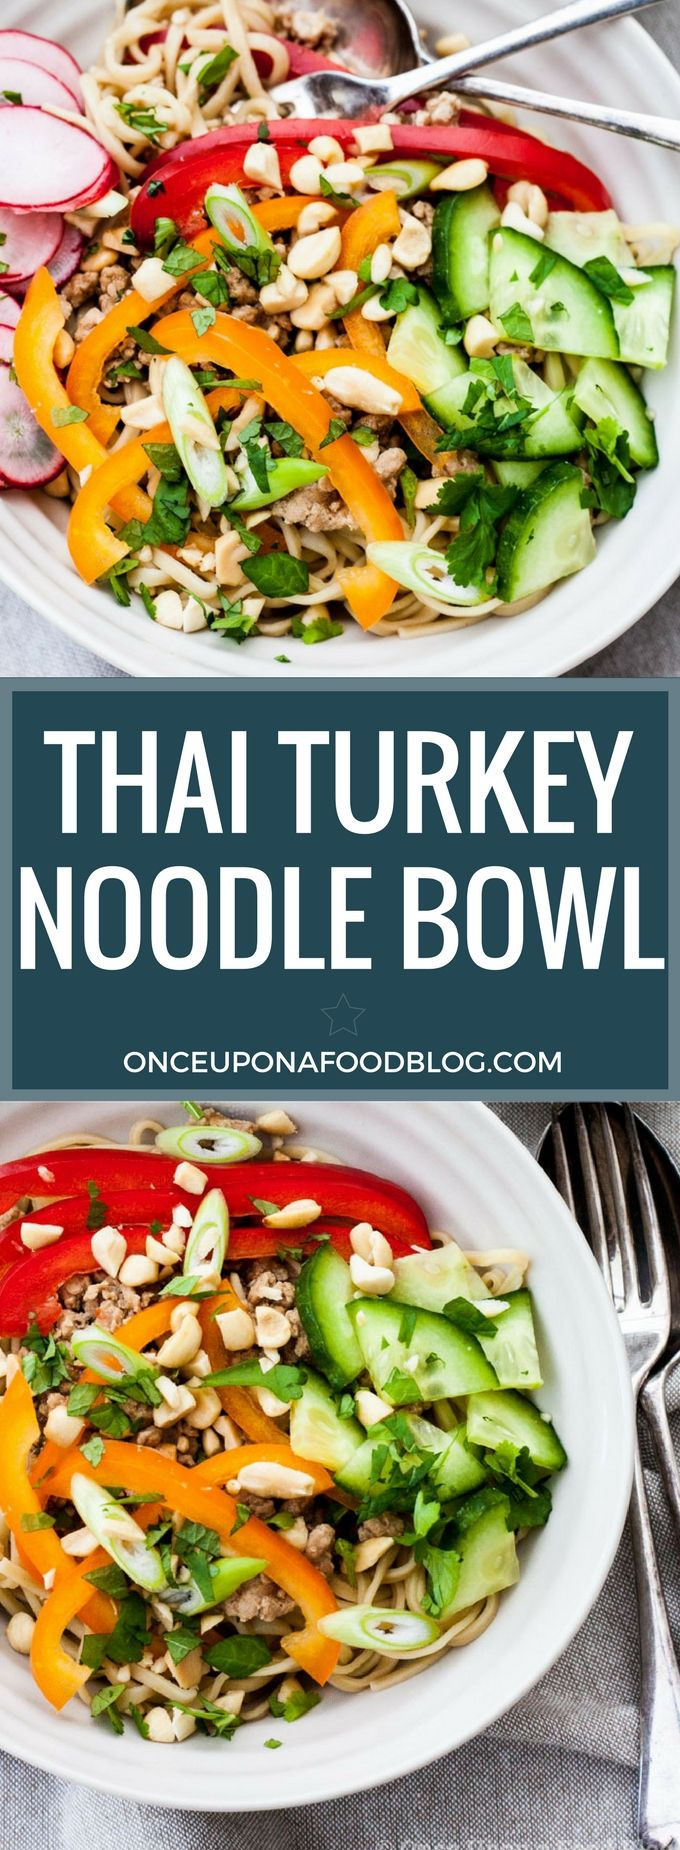 Thai Turkey Noodle Bowl | Recipe | Stuffed peppers, Real ...